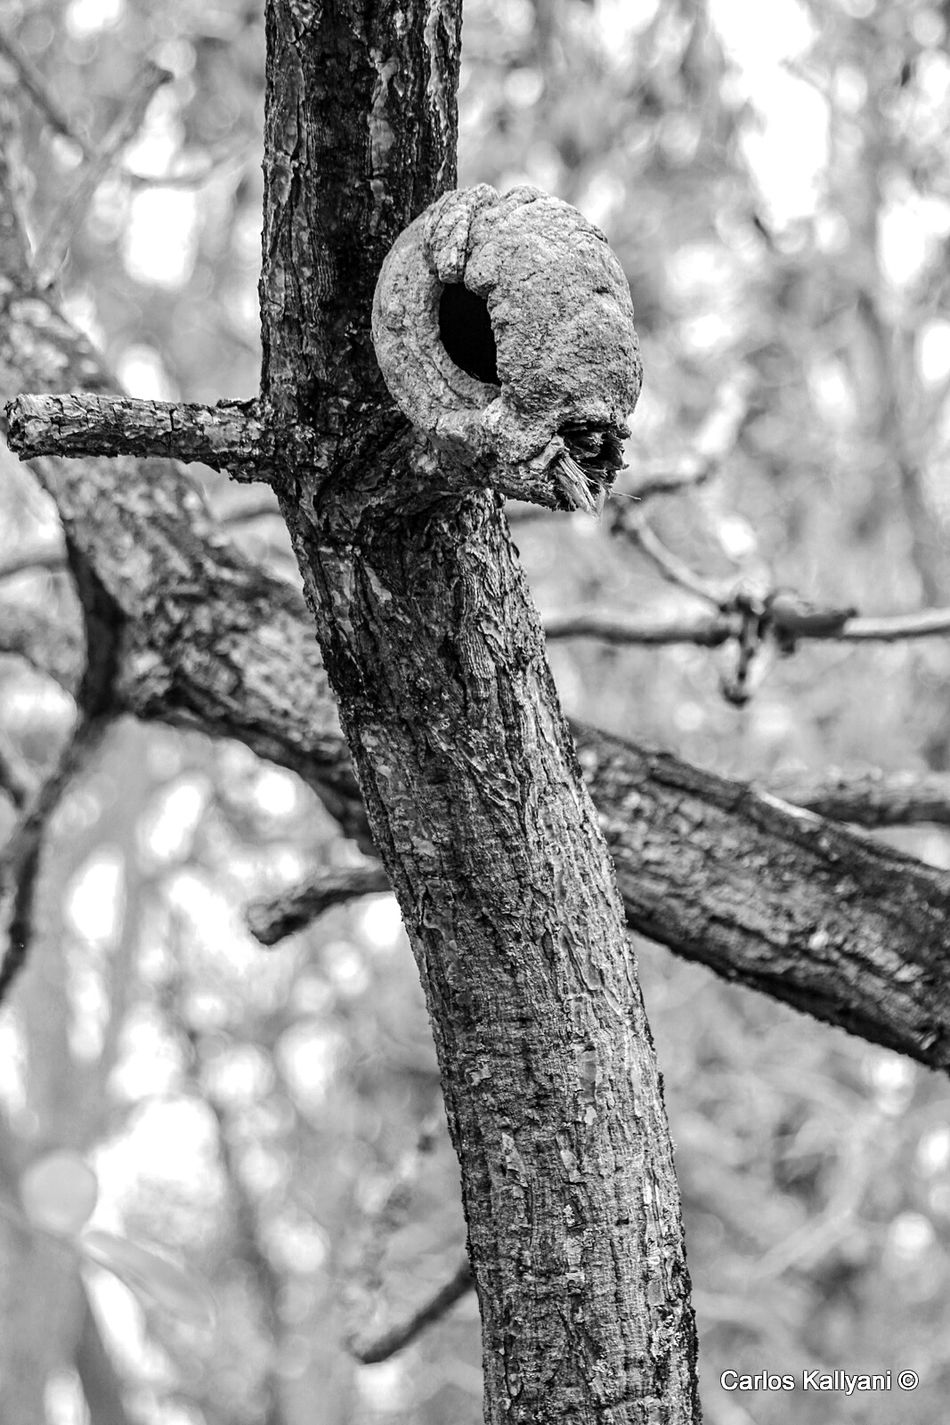 E.T. Tree Beauty In Nature ET Fotografia Brasília - Brazil Fotoartistica Fotoart Photography Foto Photo Fotoartegram Brasília No People Fotoarte